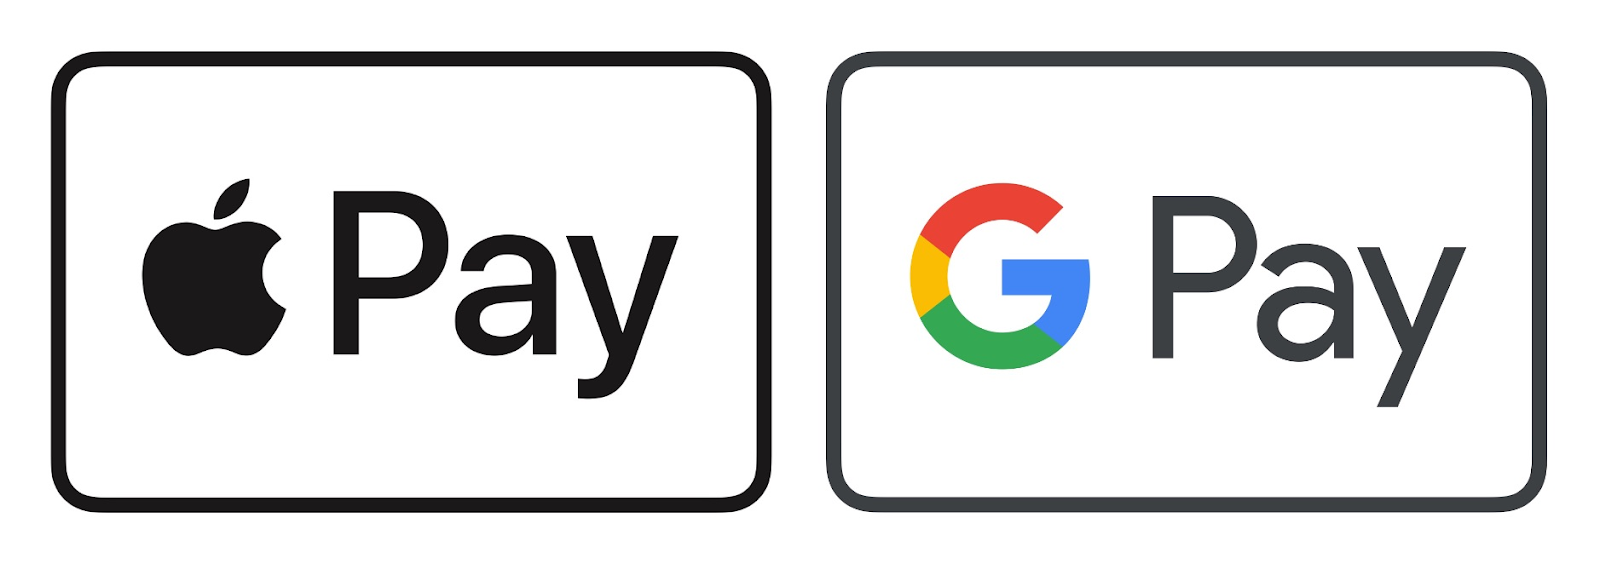 Differences between apple pay and google pay